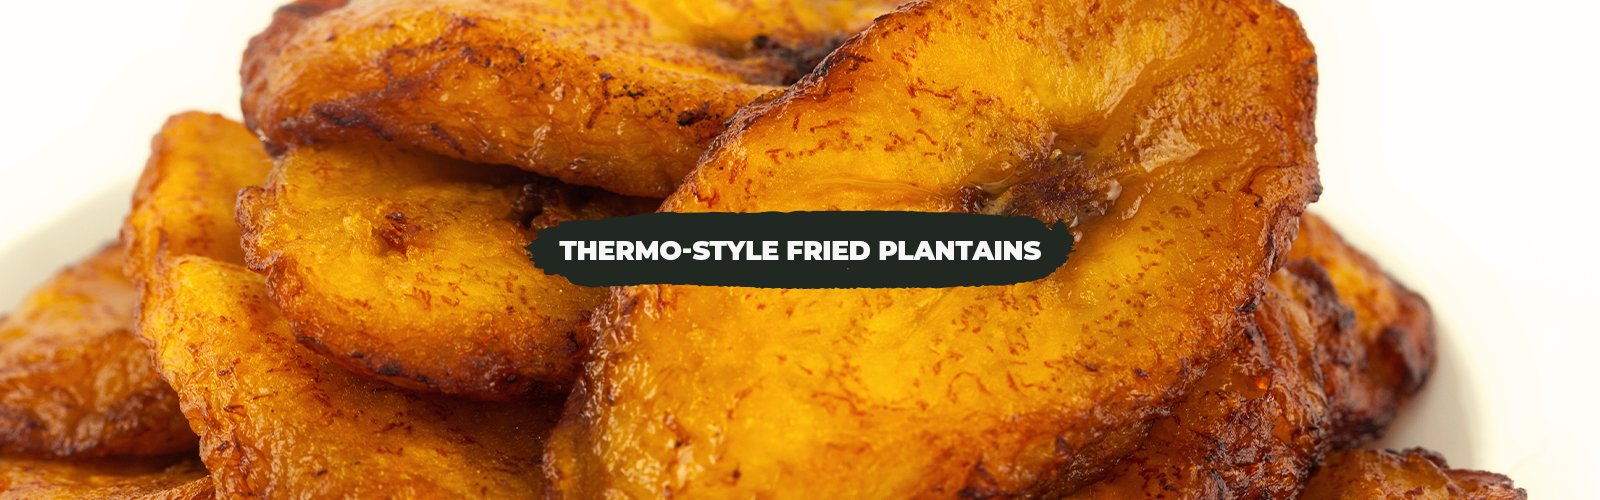 Thermo-Style Fried Plantains